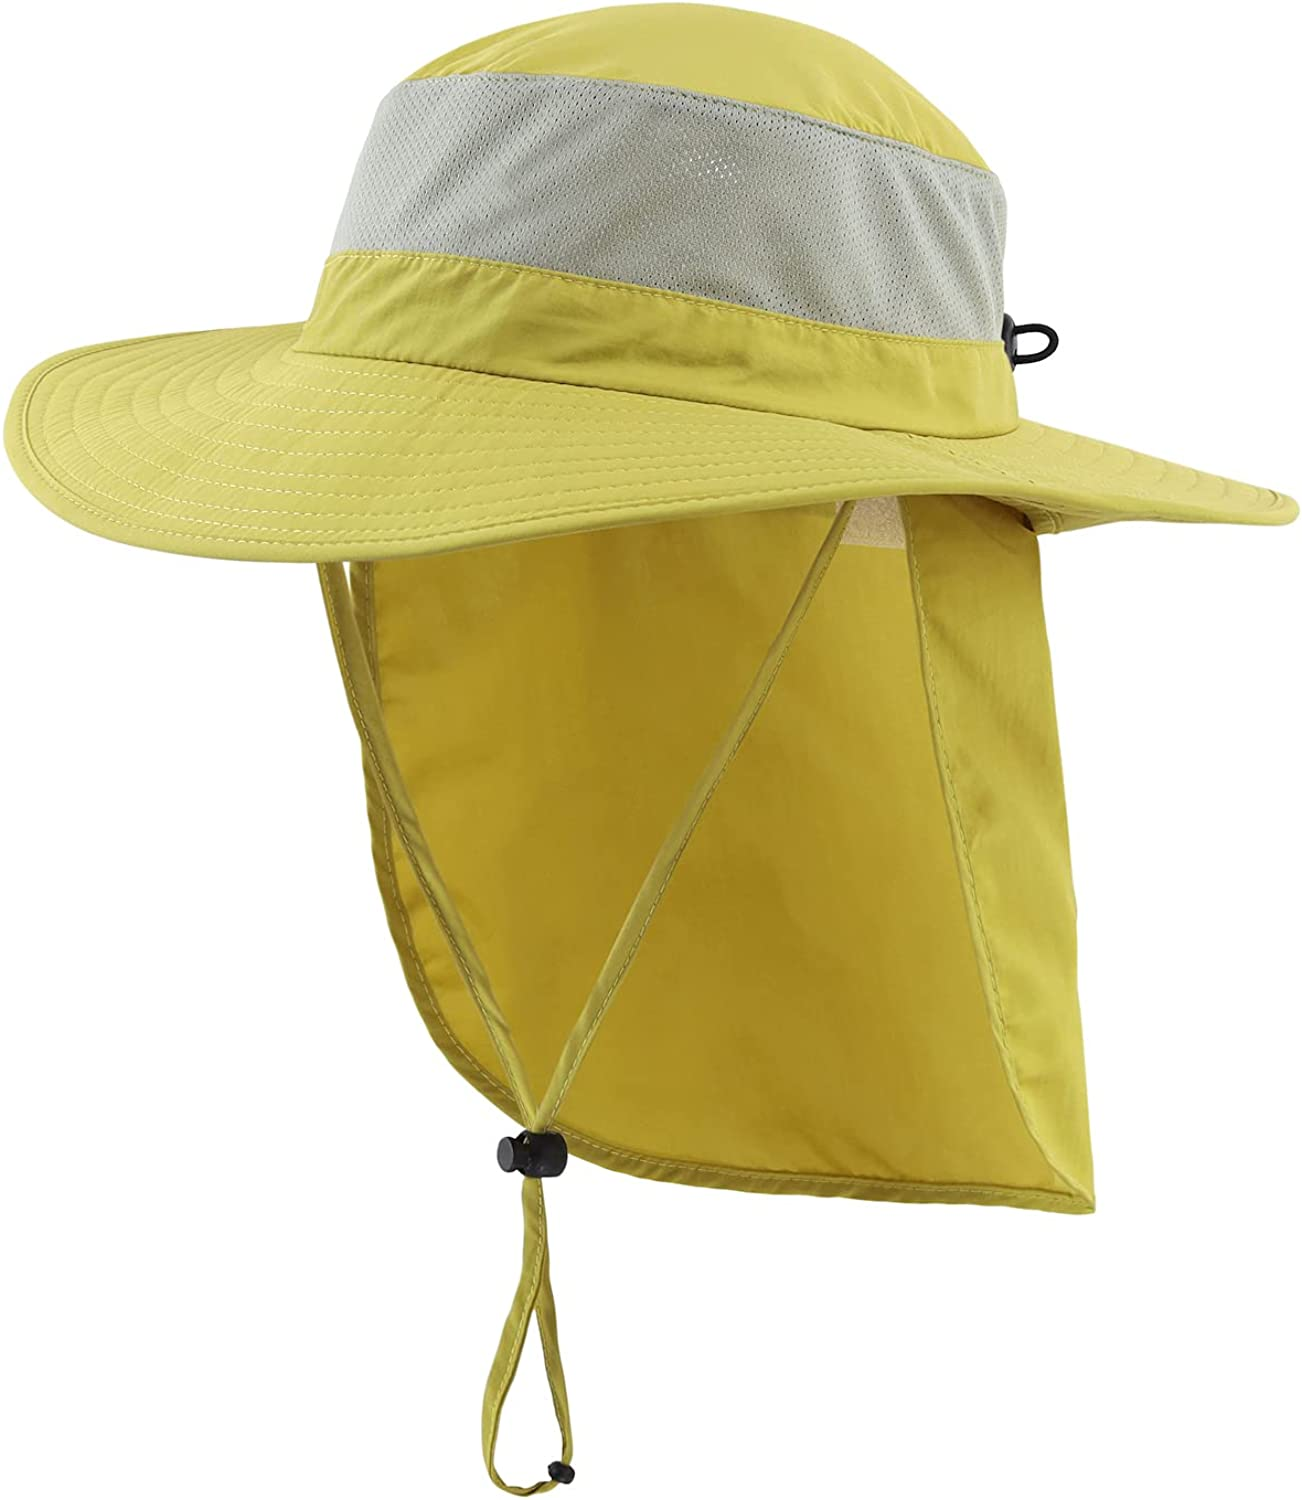 Home Prefer Outdoor UPF50+ Mesh Sun Hat Wide Brim Fishing Hat with Neck Flap